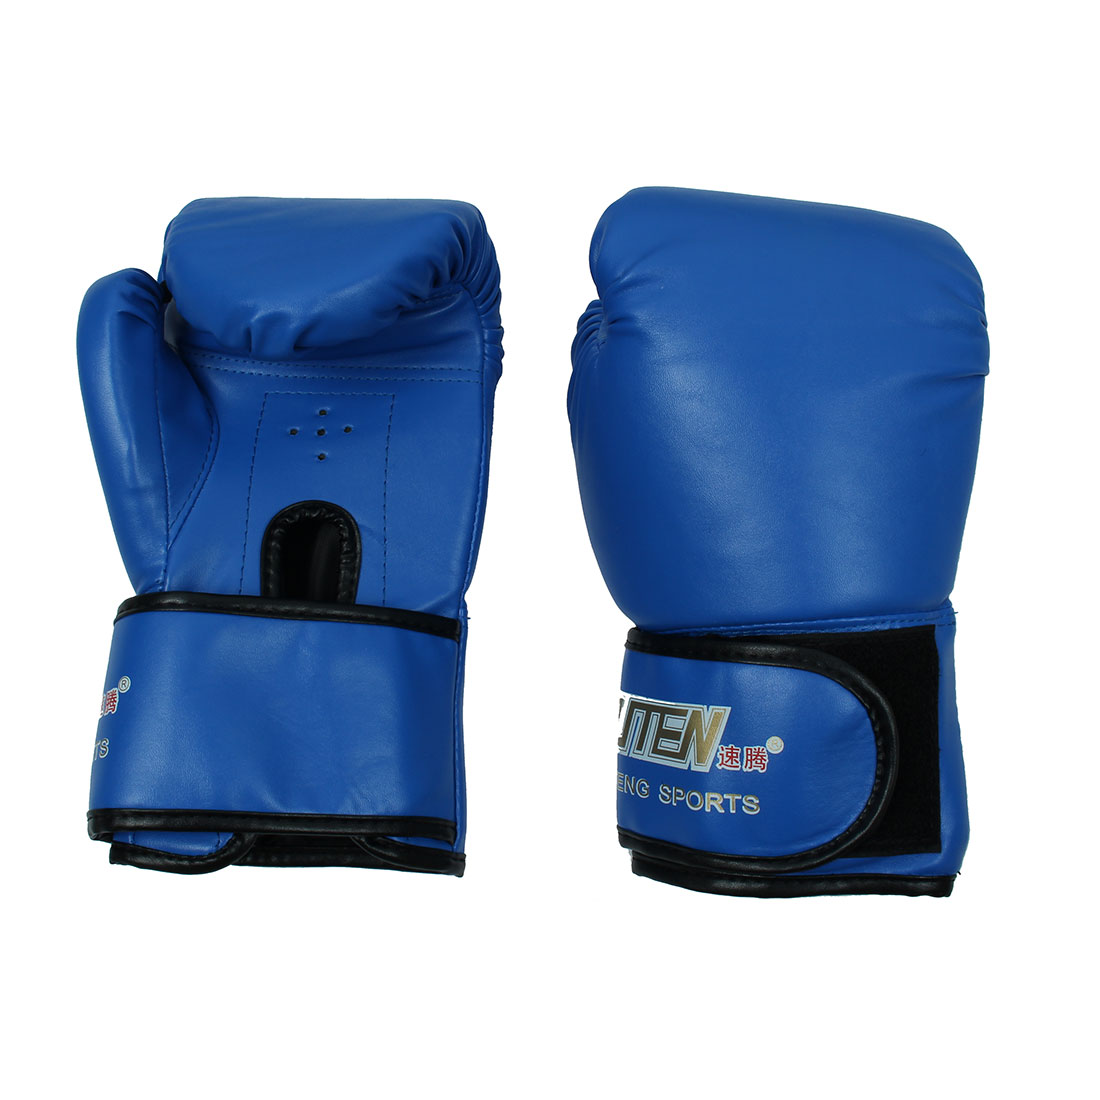 SUTENG Authorized Adult Unisex Sports PU Sparring Punching Bag Mitts Kickboxing Training Boxing Gloves Pair Blue by Unique-Bargains